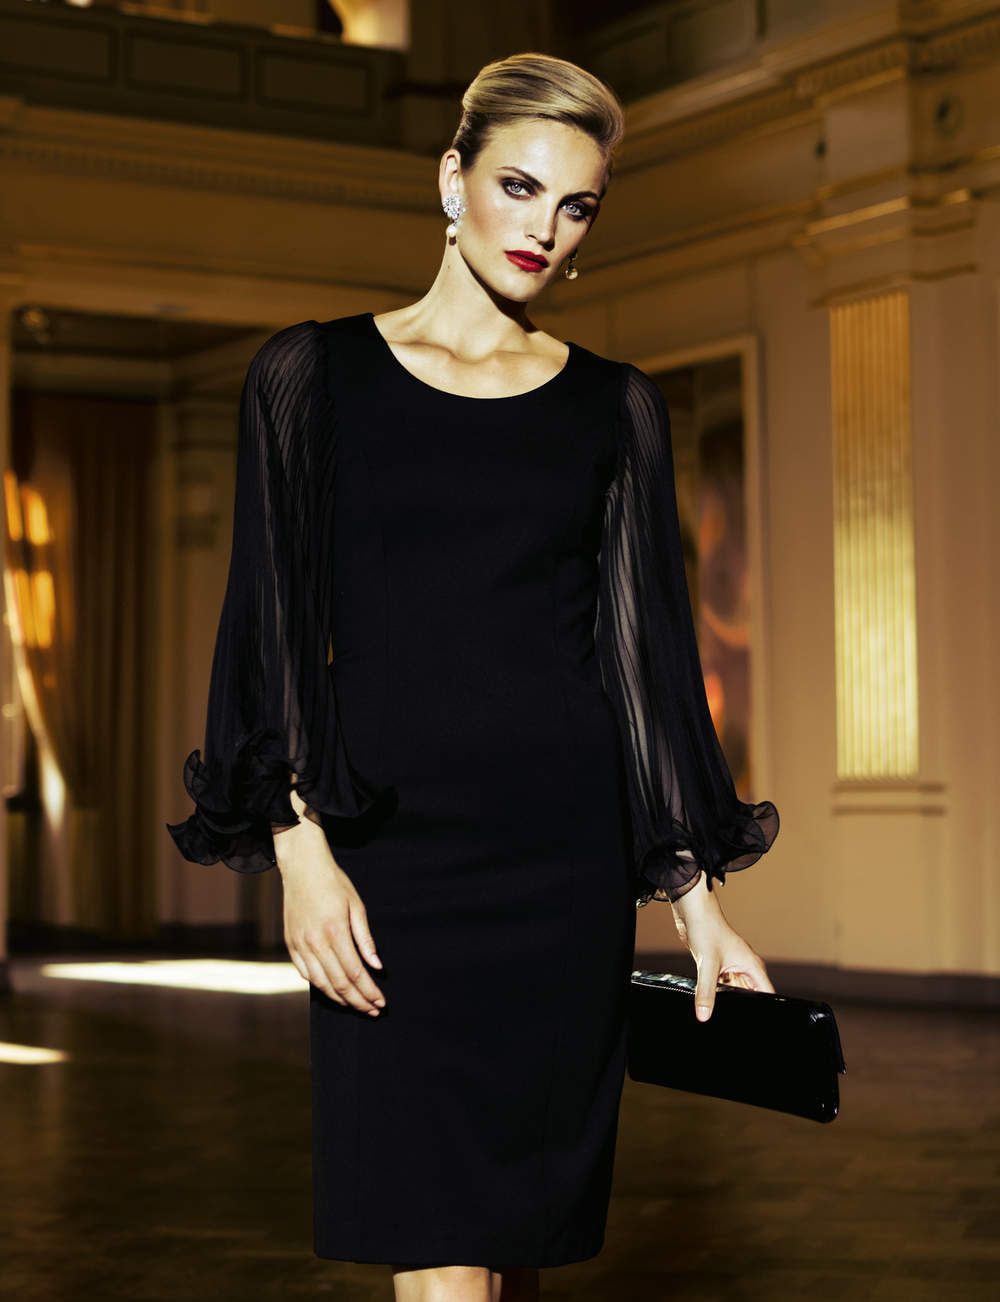 Robe noire : glamour